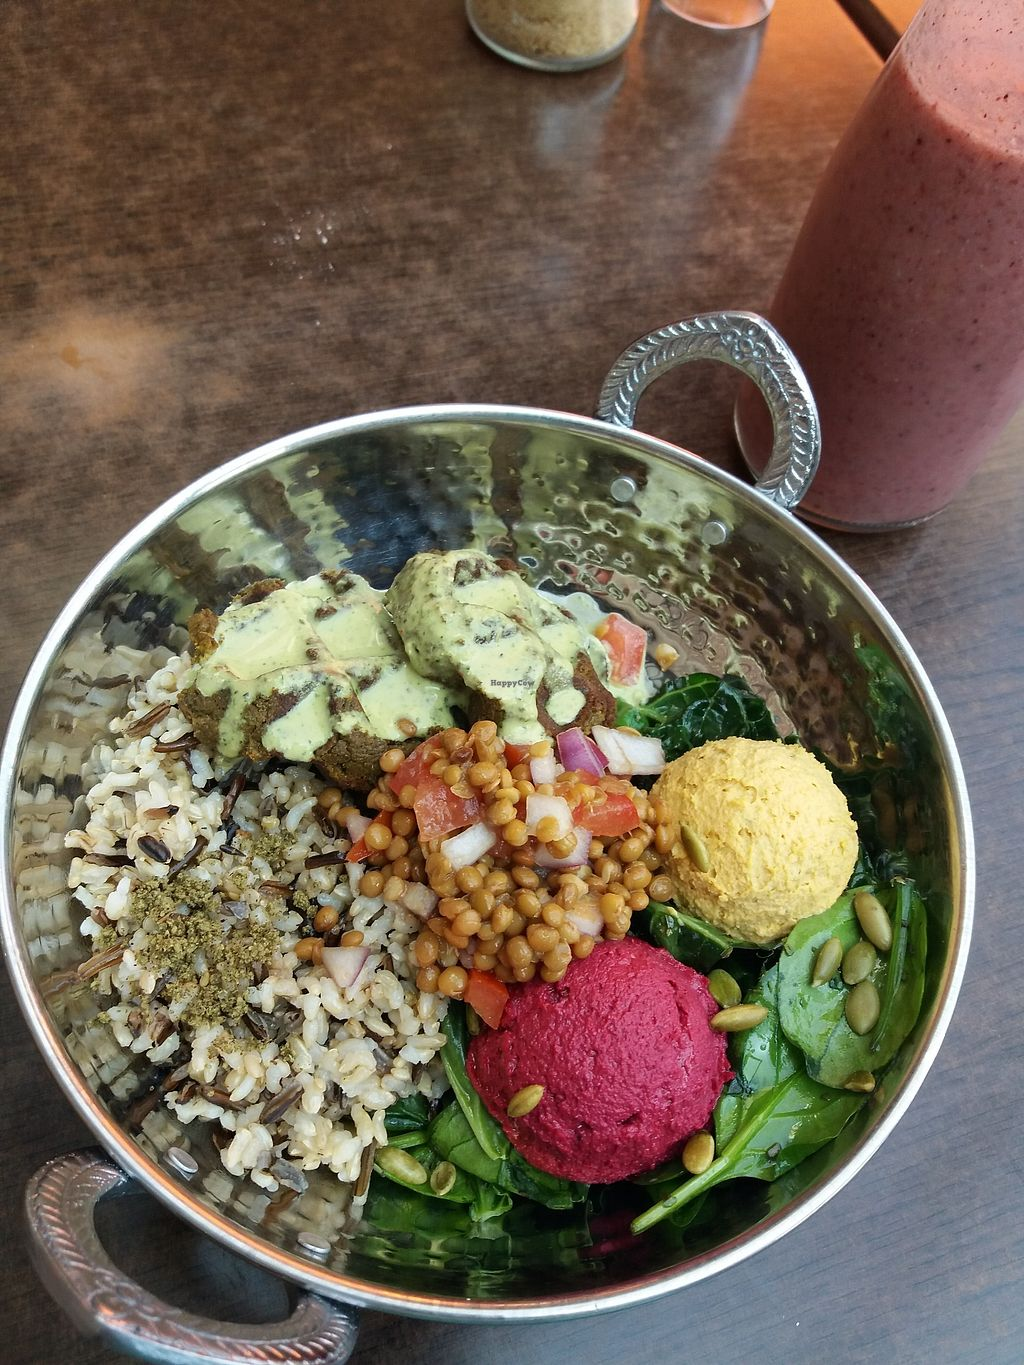 """Photo of Buddha Bowl Cafe  by <a href=""""/members/profile/veganvirtues"""">veganvirtues</a> <br/>Bedouin bowl <br/> September 21, 2017  - <a href='/contact/abuse/image/98055/306654'>Report</a>"""